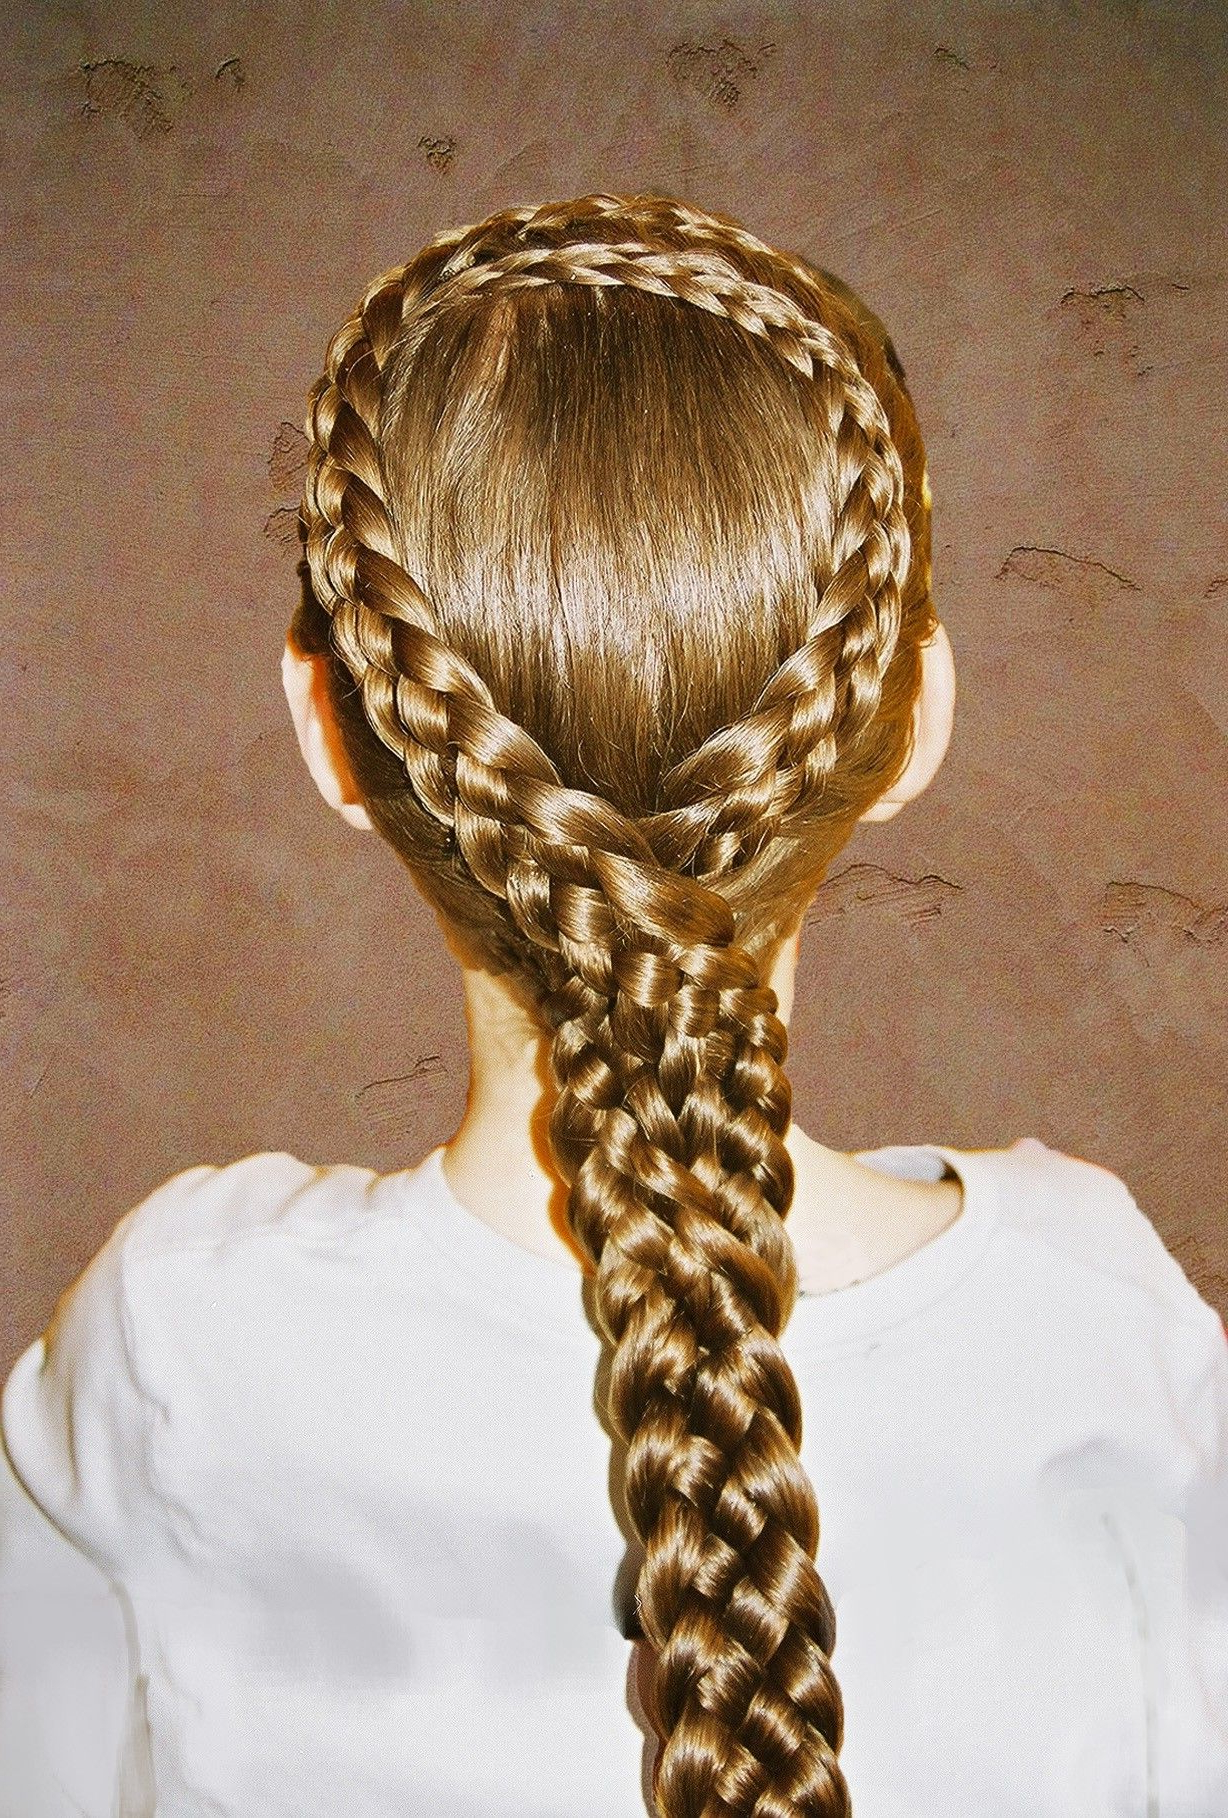 Most Popular Mermaid Inception Braid Hairstyles With Regard To Diy 2014 Five Strand Dutch Lace Teardrop Braid Hairstyles (View 4 of 20)